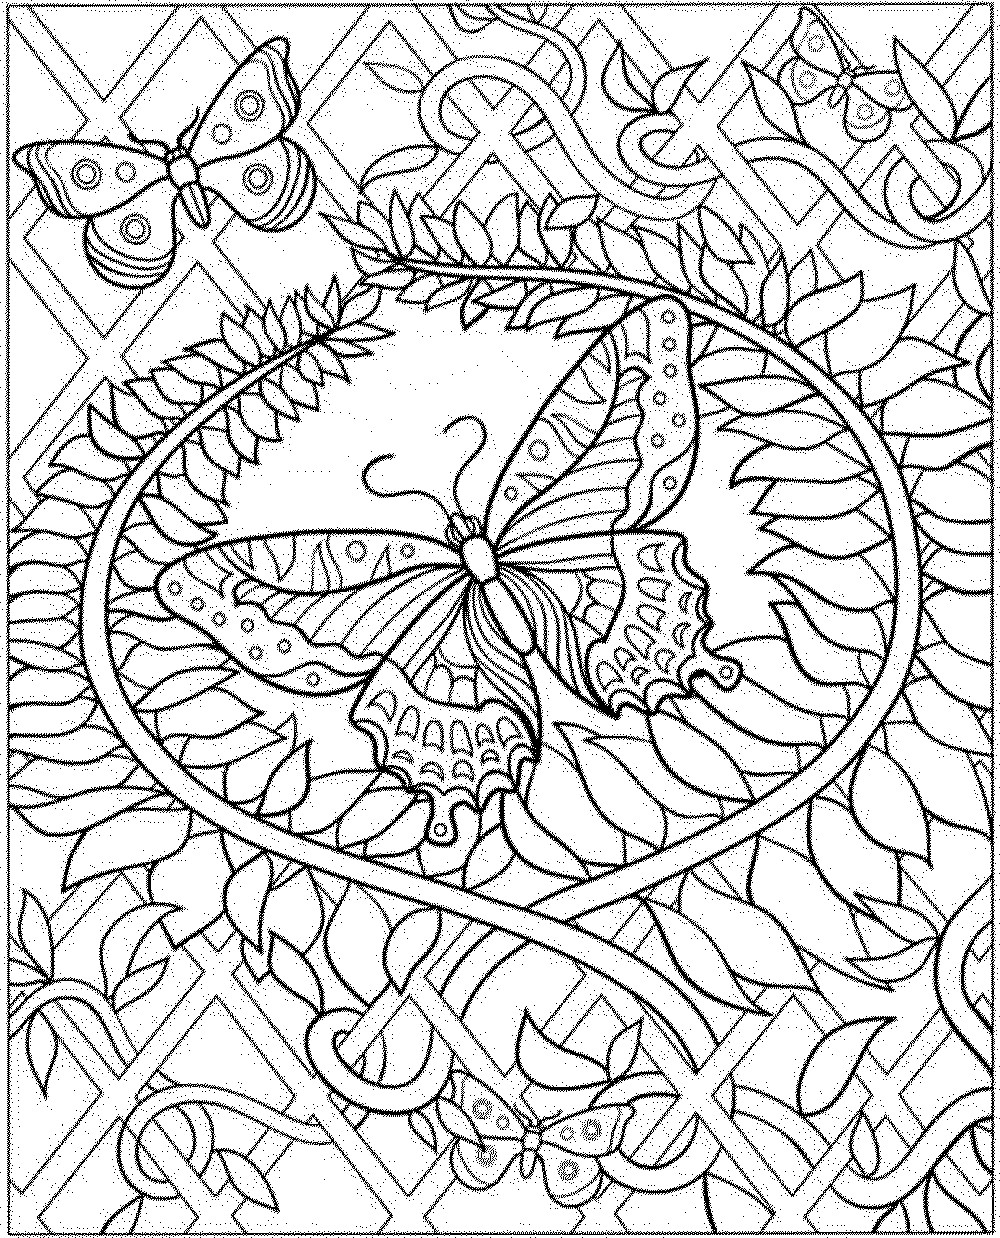 Intricate Coloring Pages For Kids  Intricate Flower Coloring Pages Coloring Home